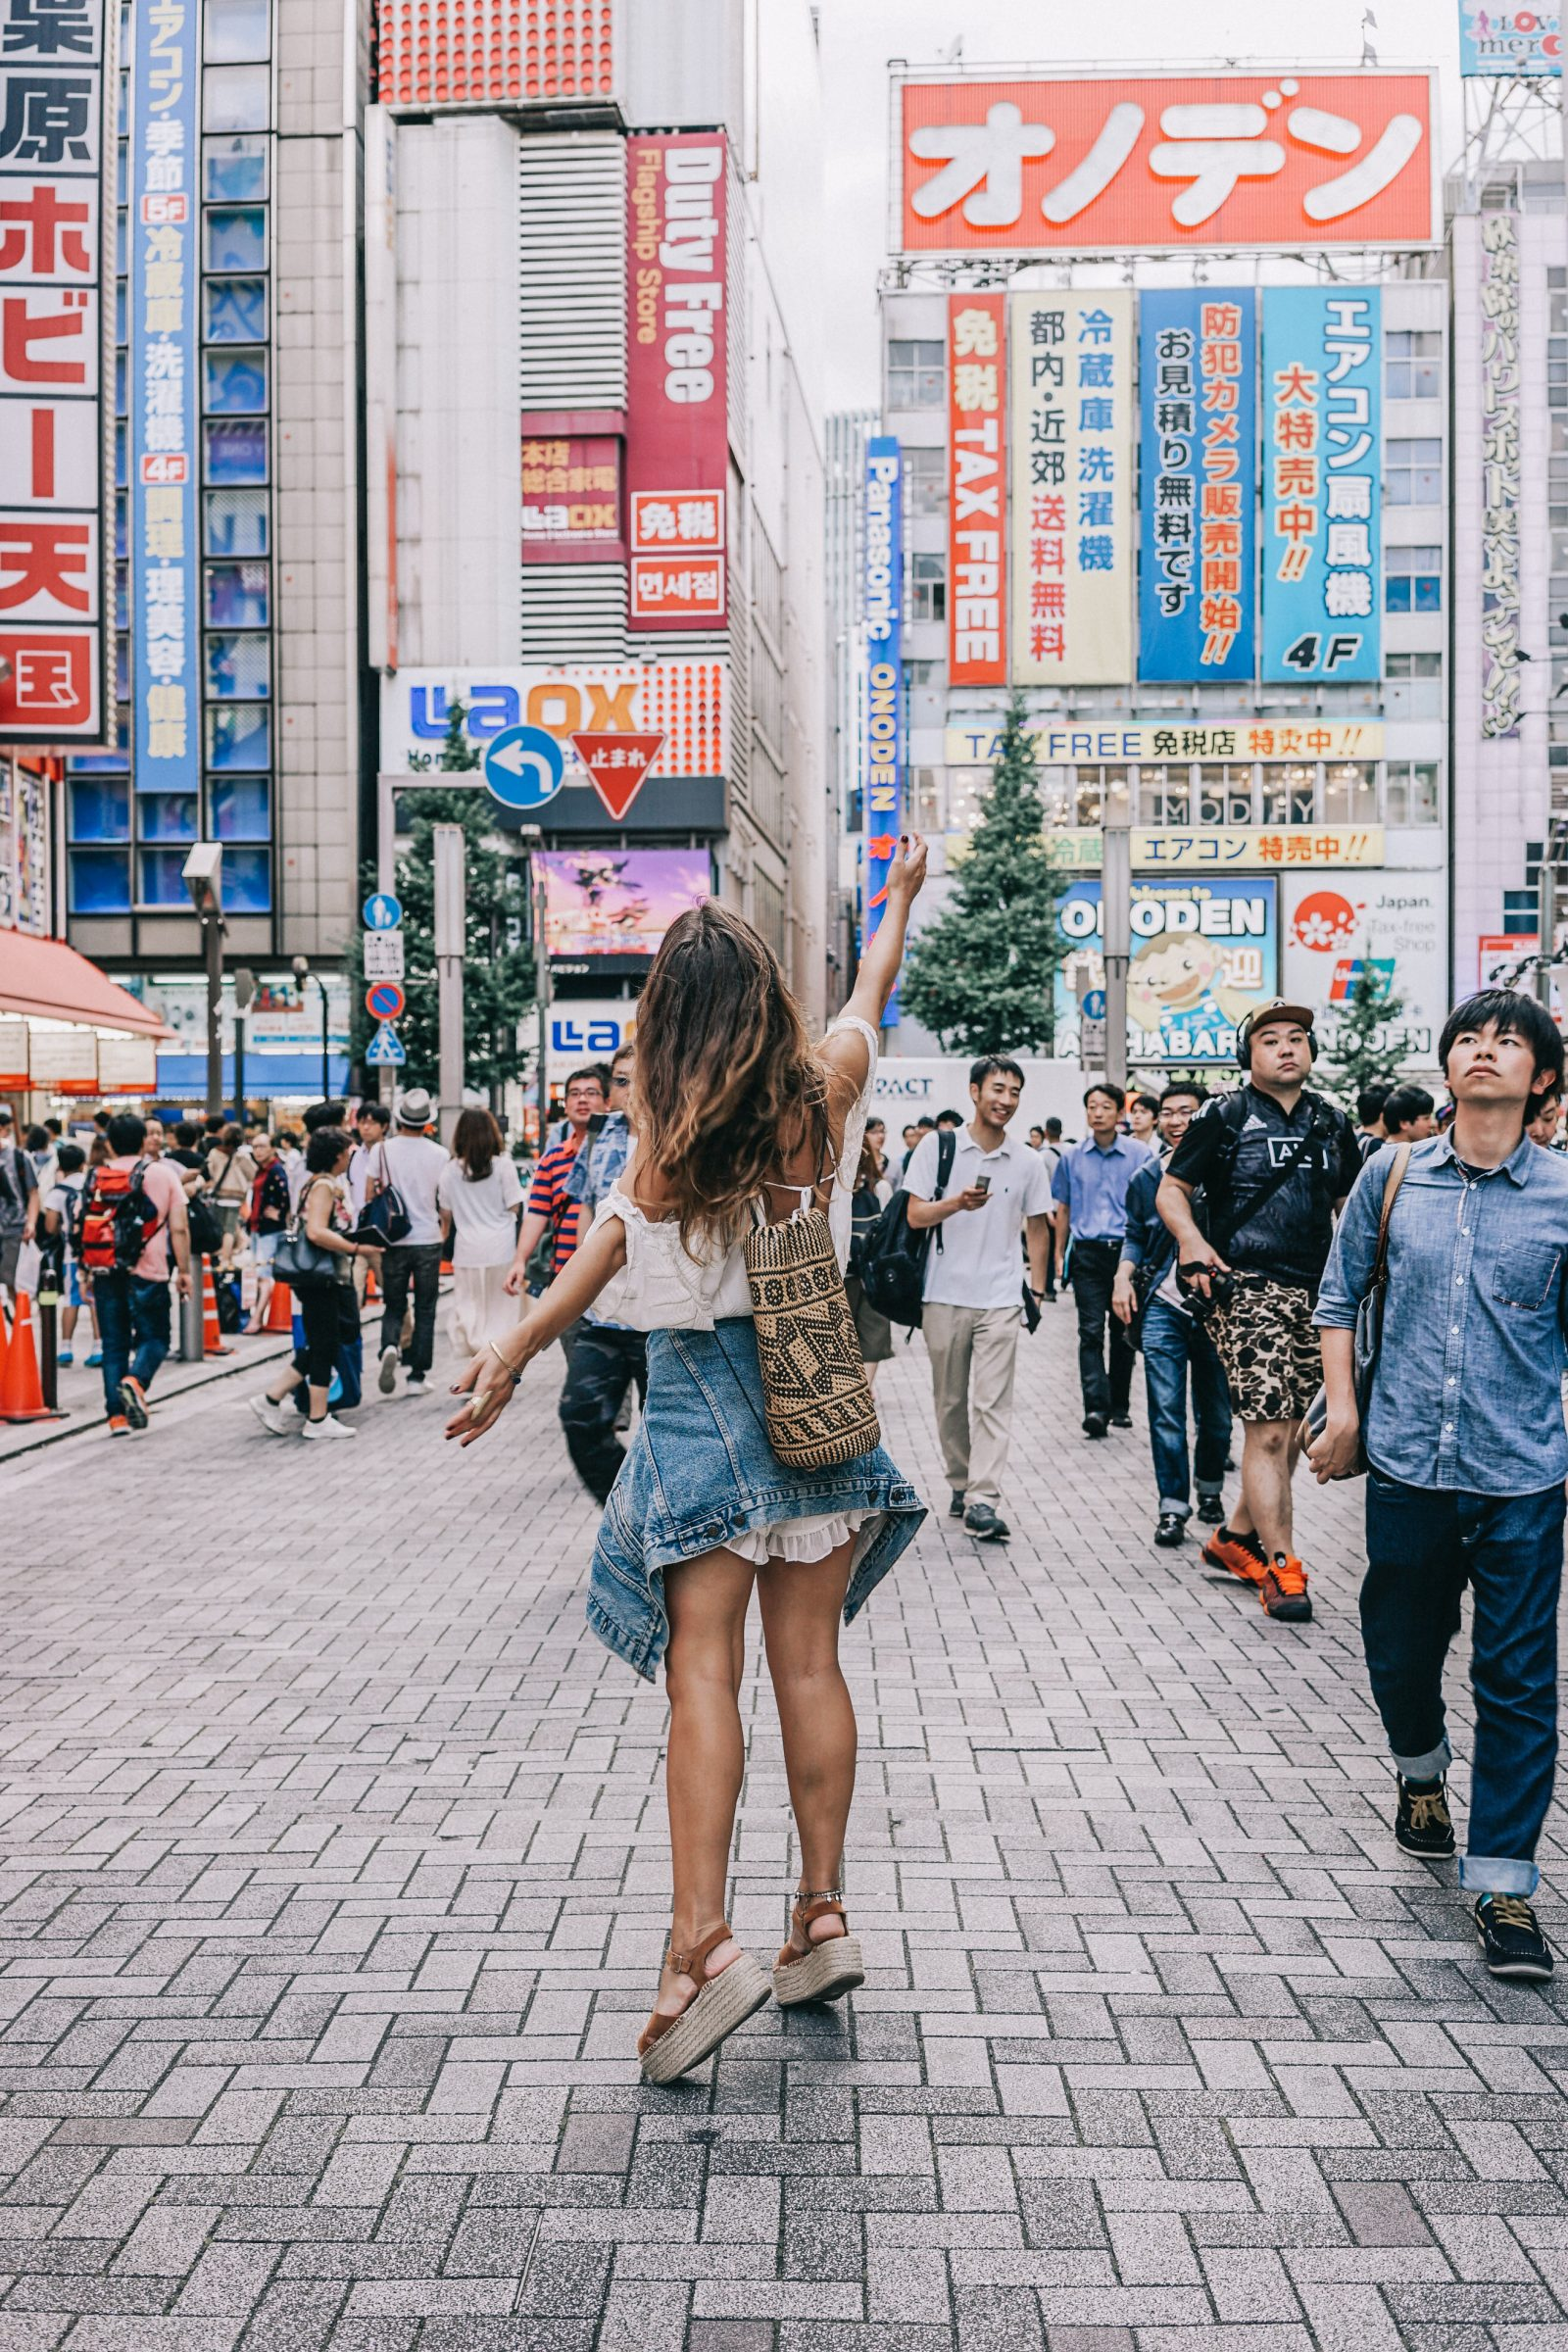 tokyo_travel_guide-outfit-collage_vintage-street_style-lovers_and_friends_jumpsuit-white_outfit-espadrilles-backpack-levis_denim_jacket-akihabara-155